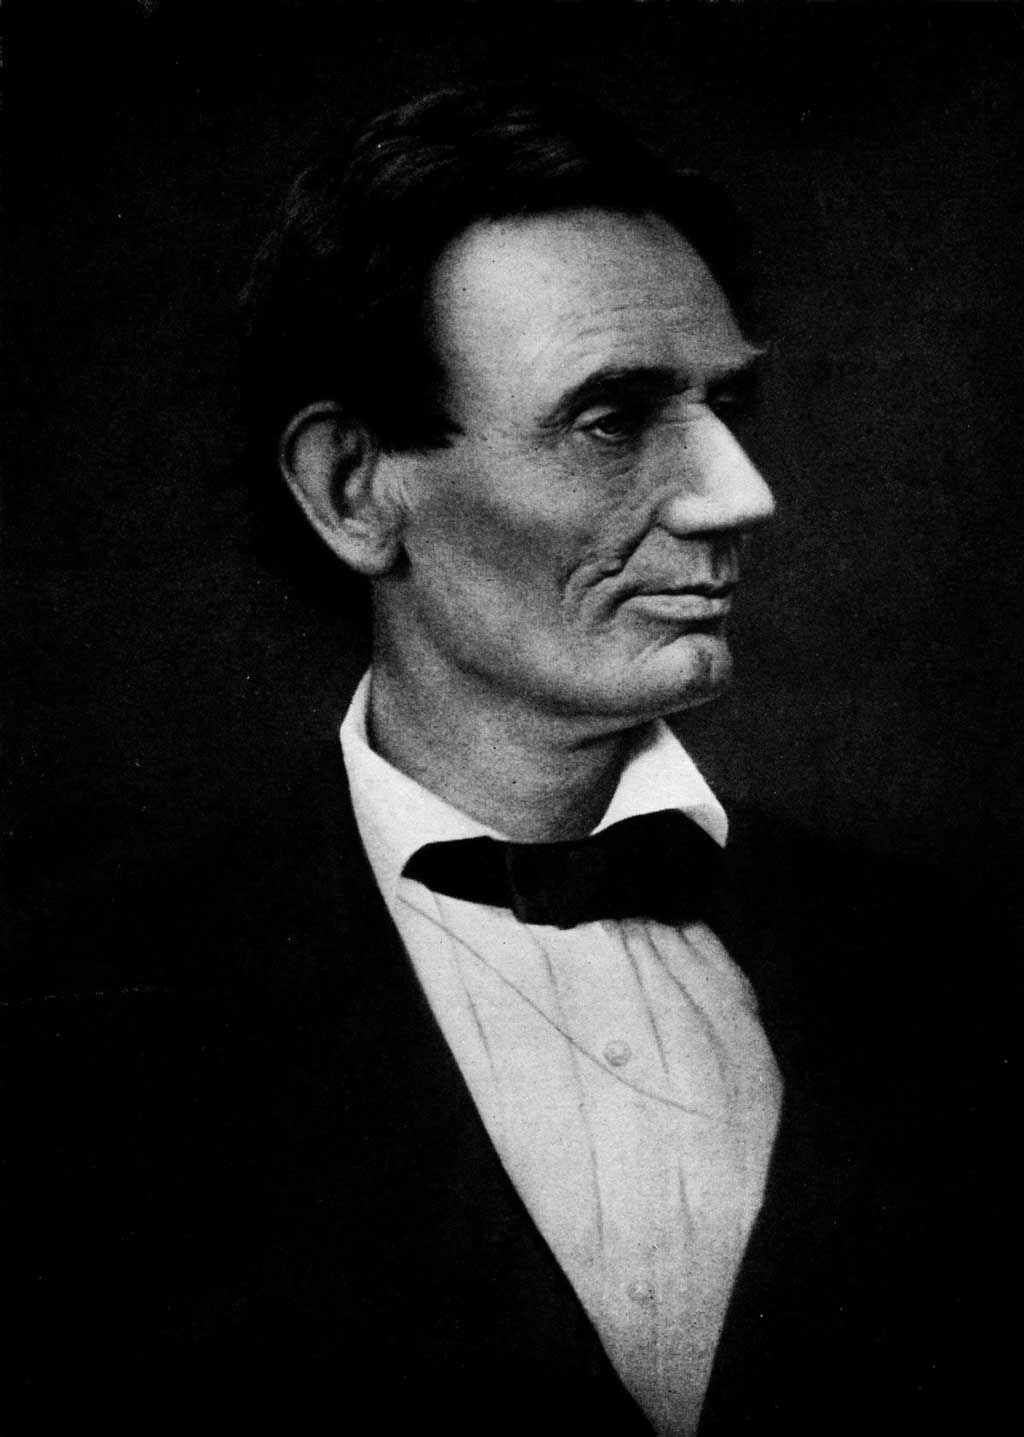 Photograph of Abraham Lincoln